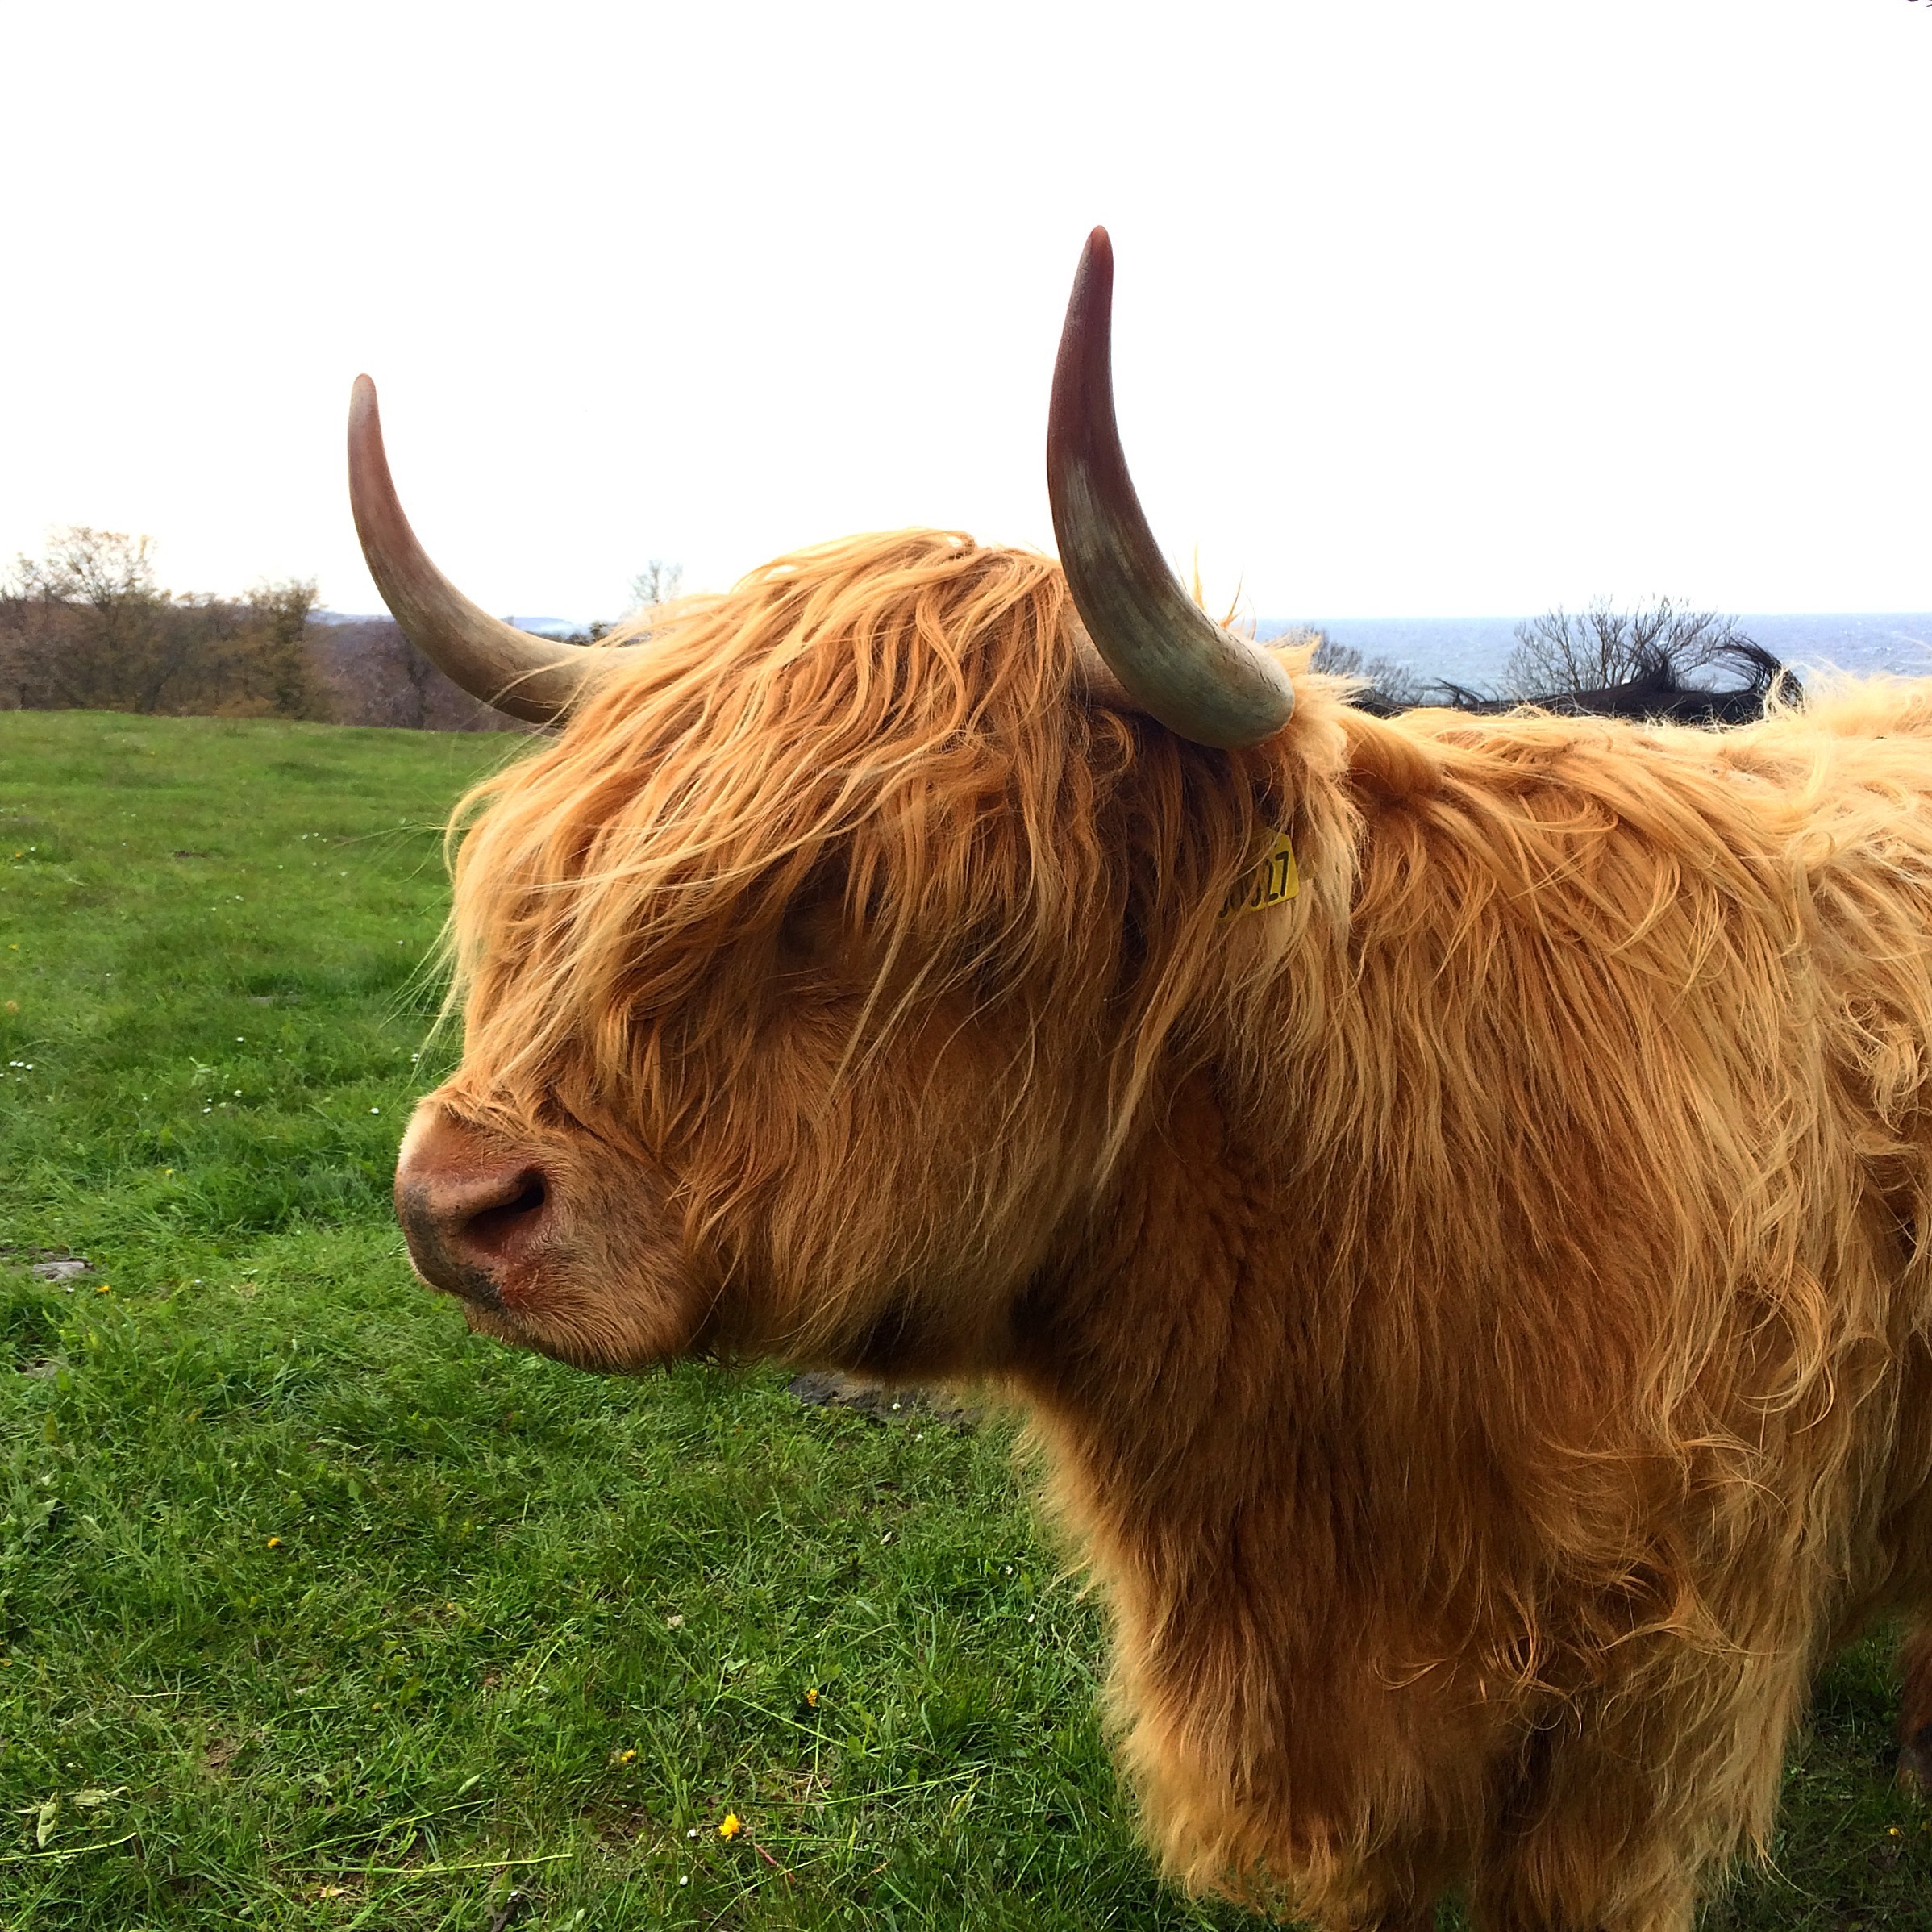 HIghland cattle grazing (and looking aloof) at the windswept fields neighbouring upon  Bornholm's Art Museum  and  Helligdomsklipperne  (best translated as The Sacred Rocks).